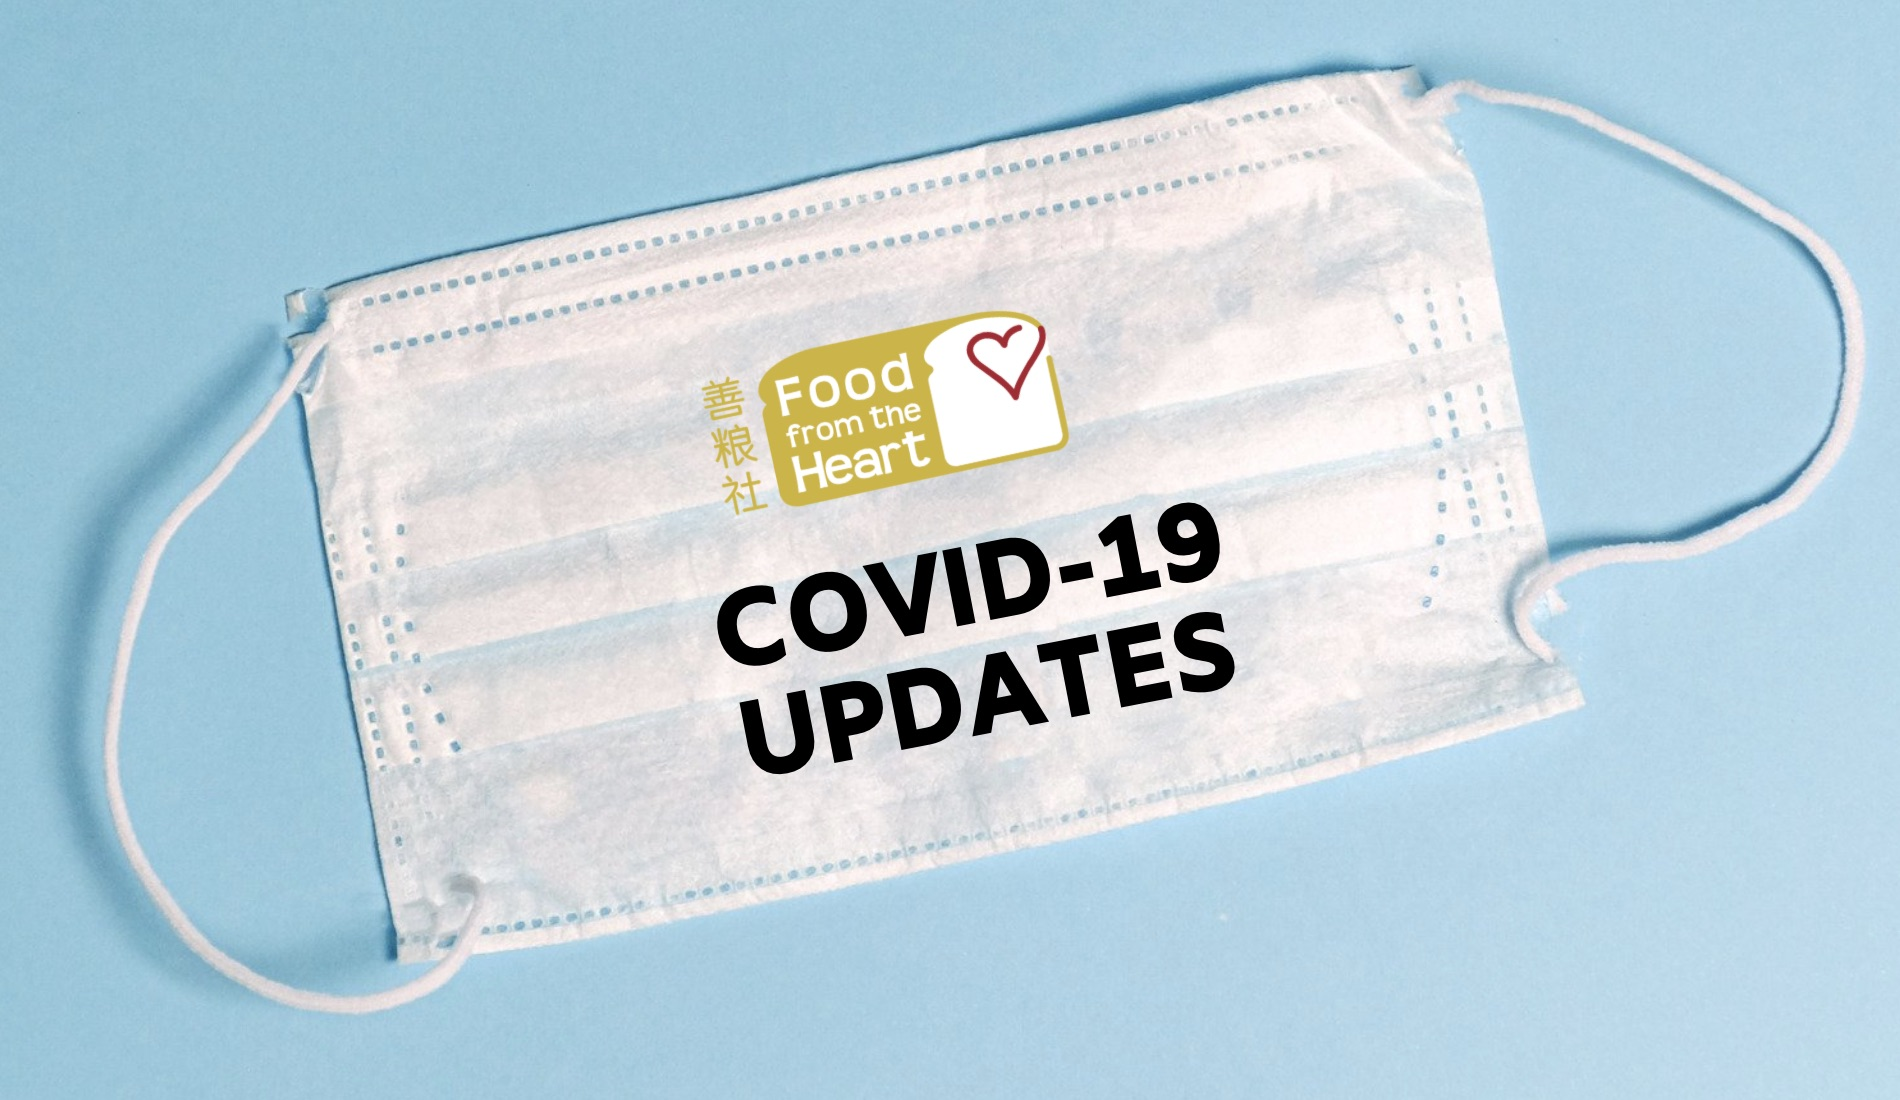 List of Food from the Heart COVID-19 Updates